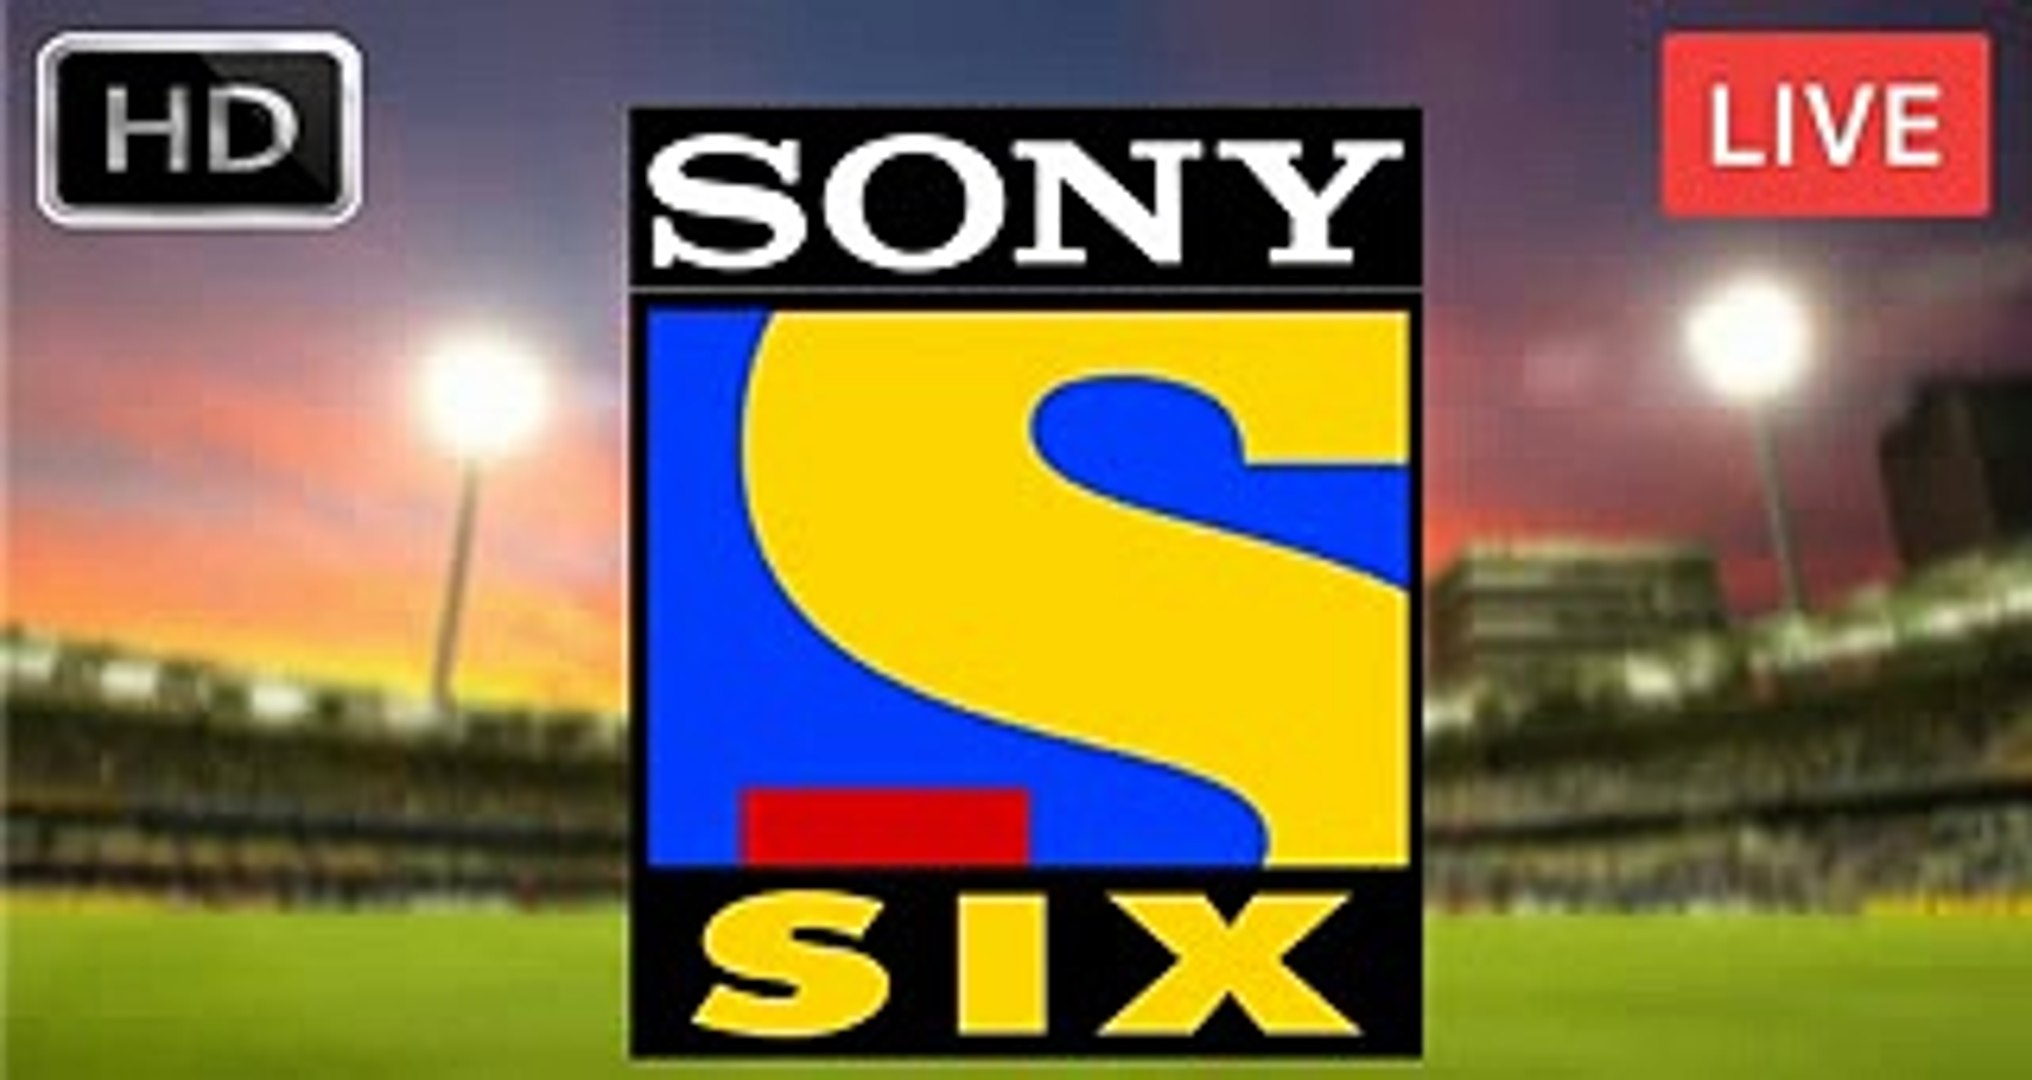 Sony Six LIVE - Sony Six Live HD - Sony Six HD Live - IPL